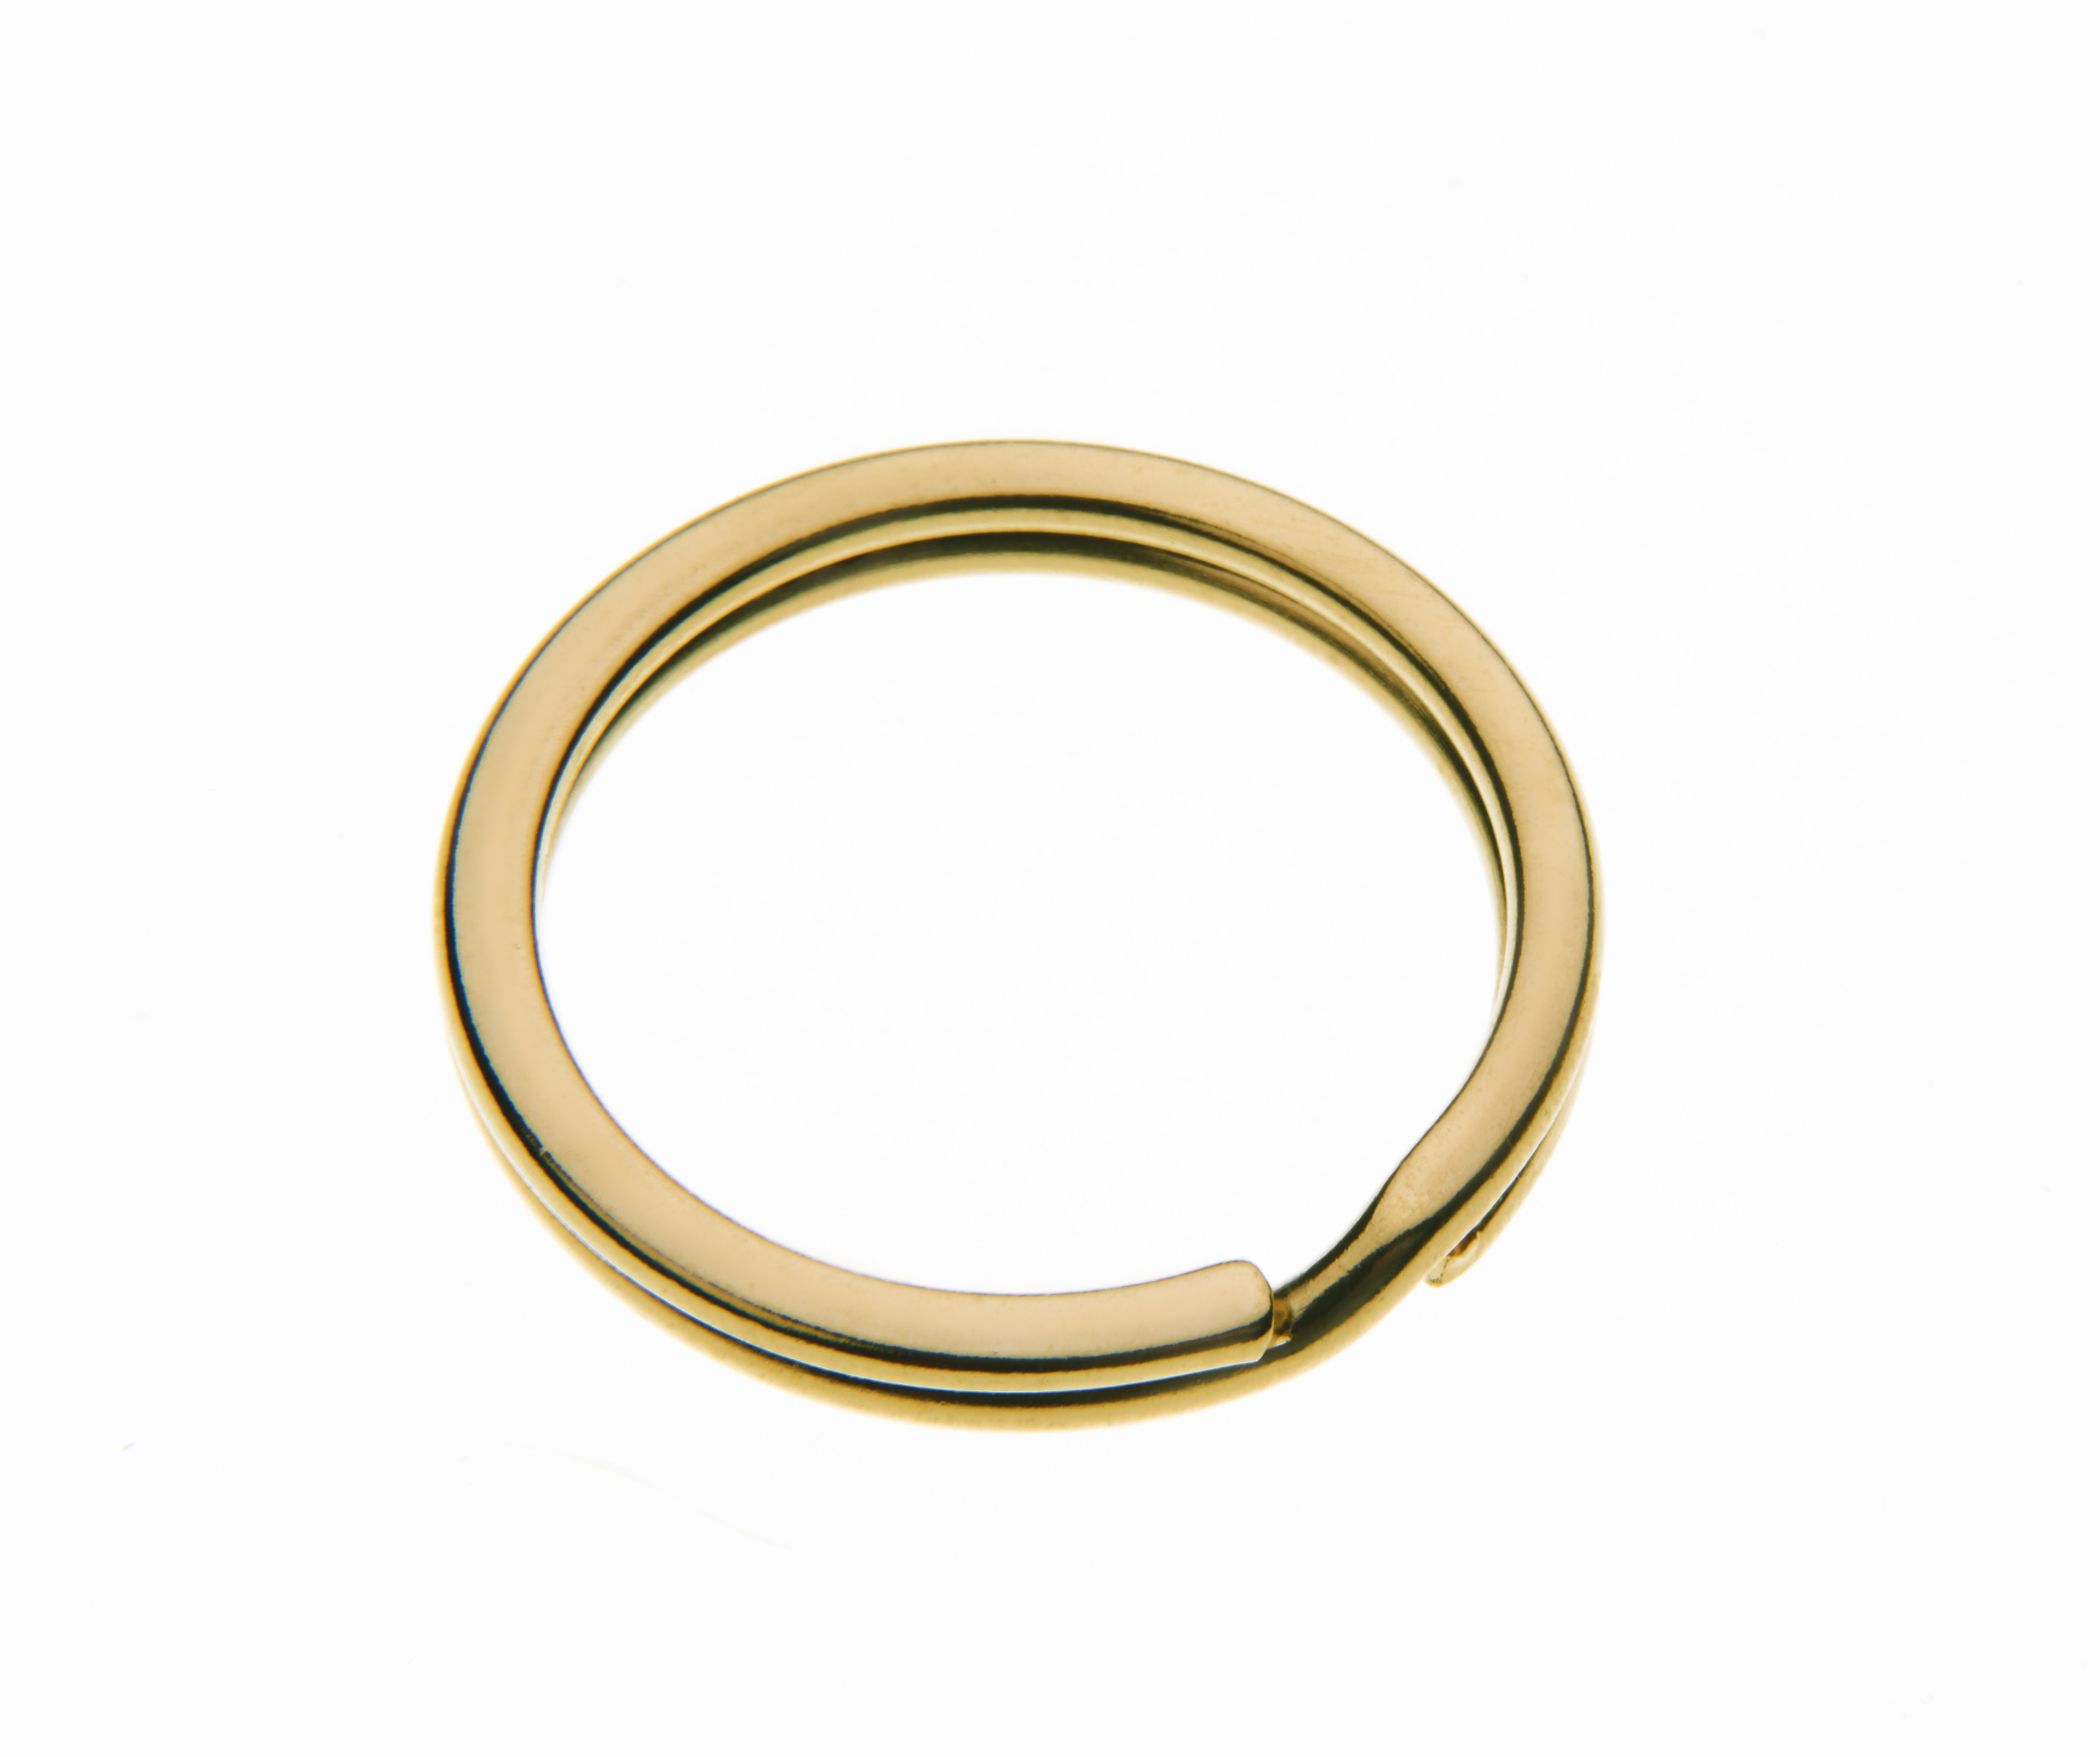 26mm Flat Splitring Gilt Plate